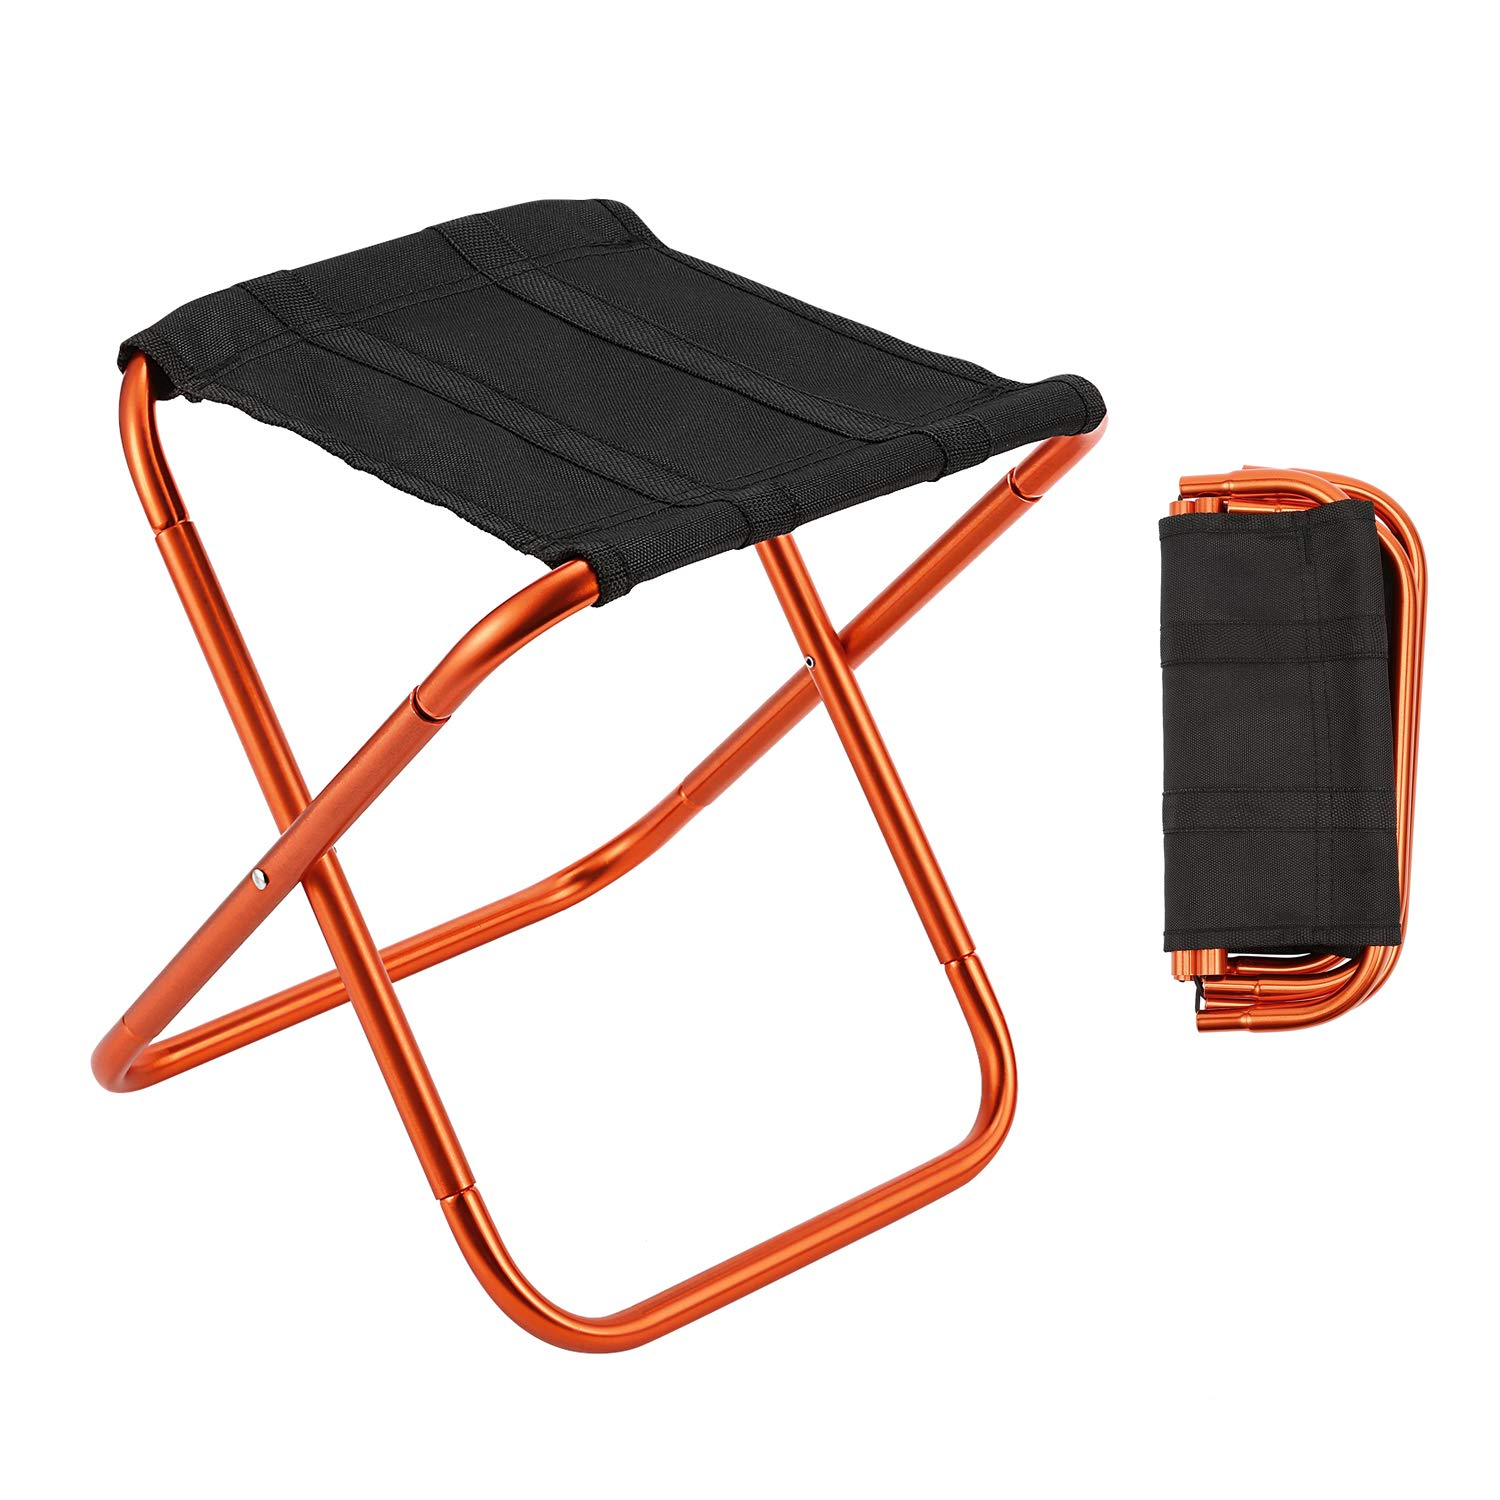 Gonex Folding Camping Stool, Lightweight & Portable Sturdy Chair for Picnic Camping Hiking Backpacking, Compact Traveling Foot Stool, Large Orange by Gonex